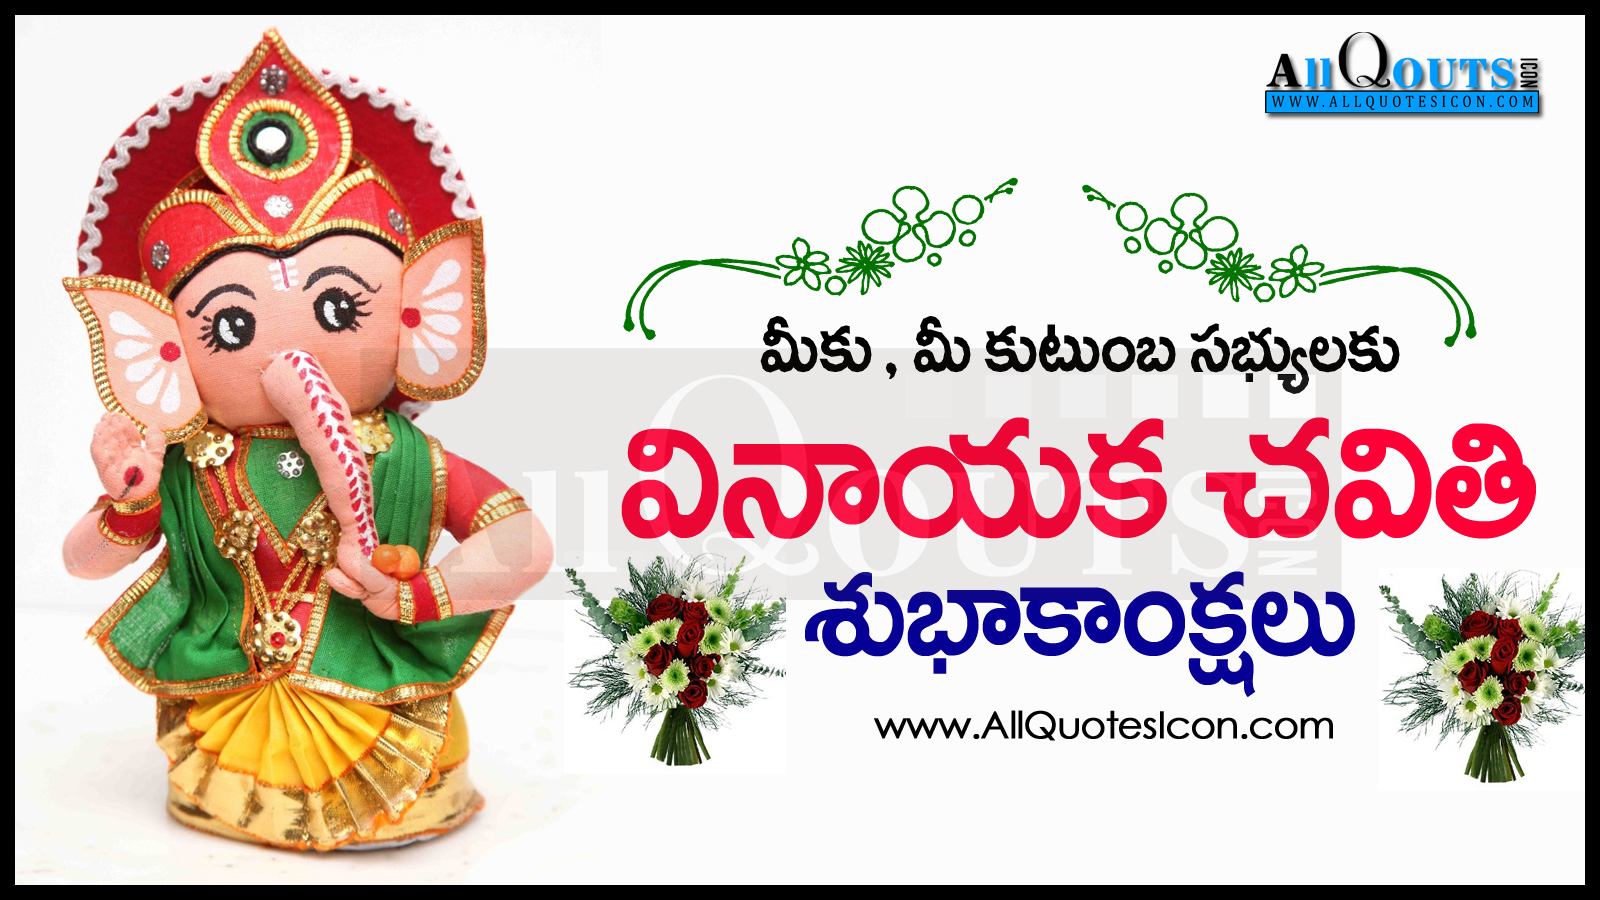 Happy Vinayaka Chavithi Images And Greetings In Telugu 258 Www